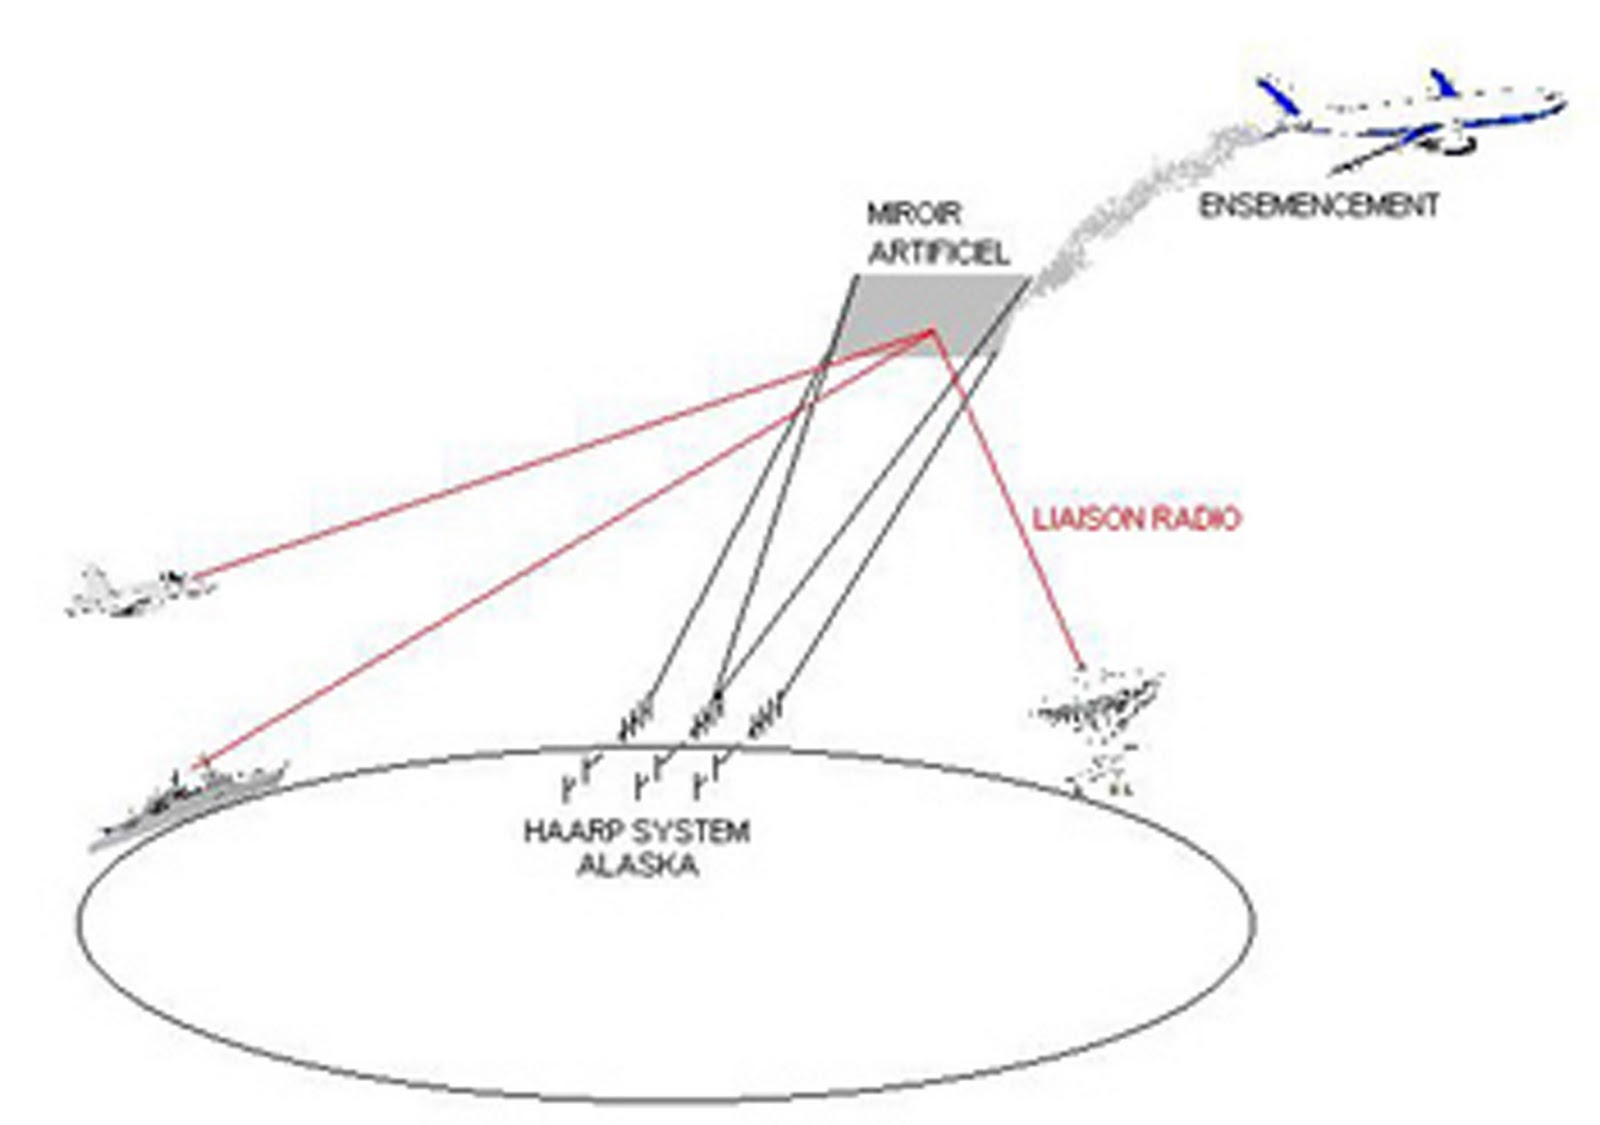 Hyperborean Vibrations: A new theory for the causes of